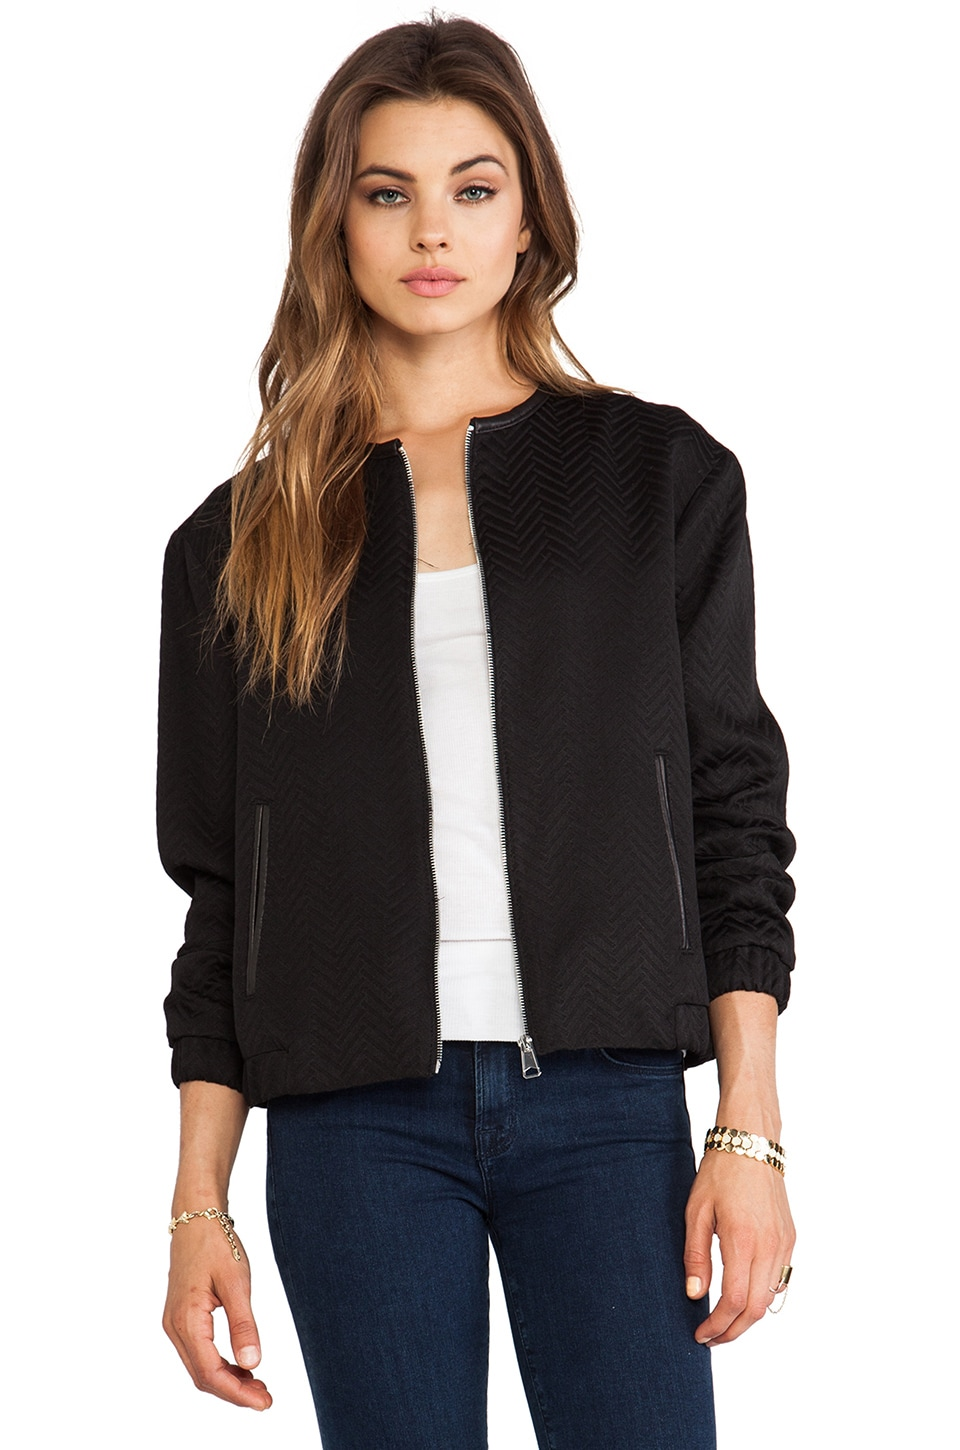 Soia & Kyo Kara Bomber Jacket in Black